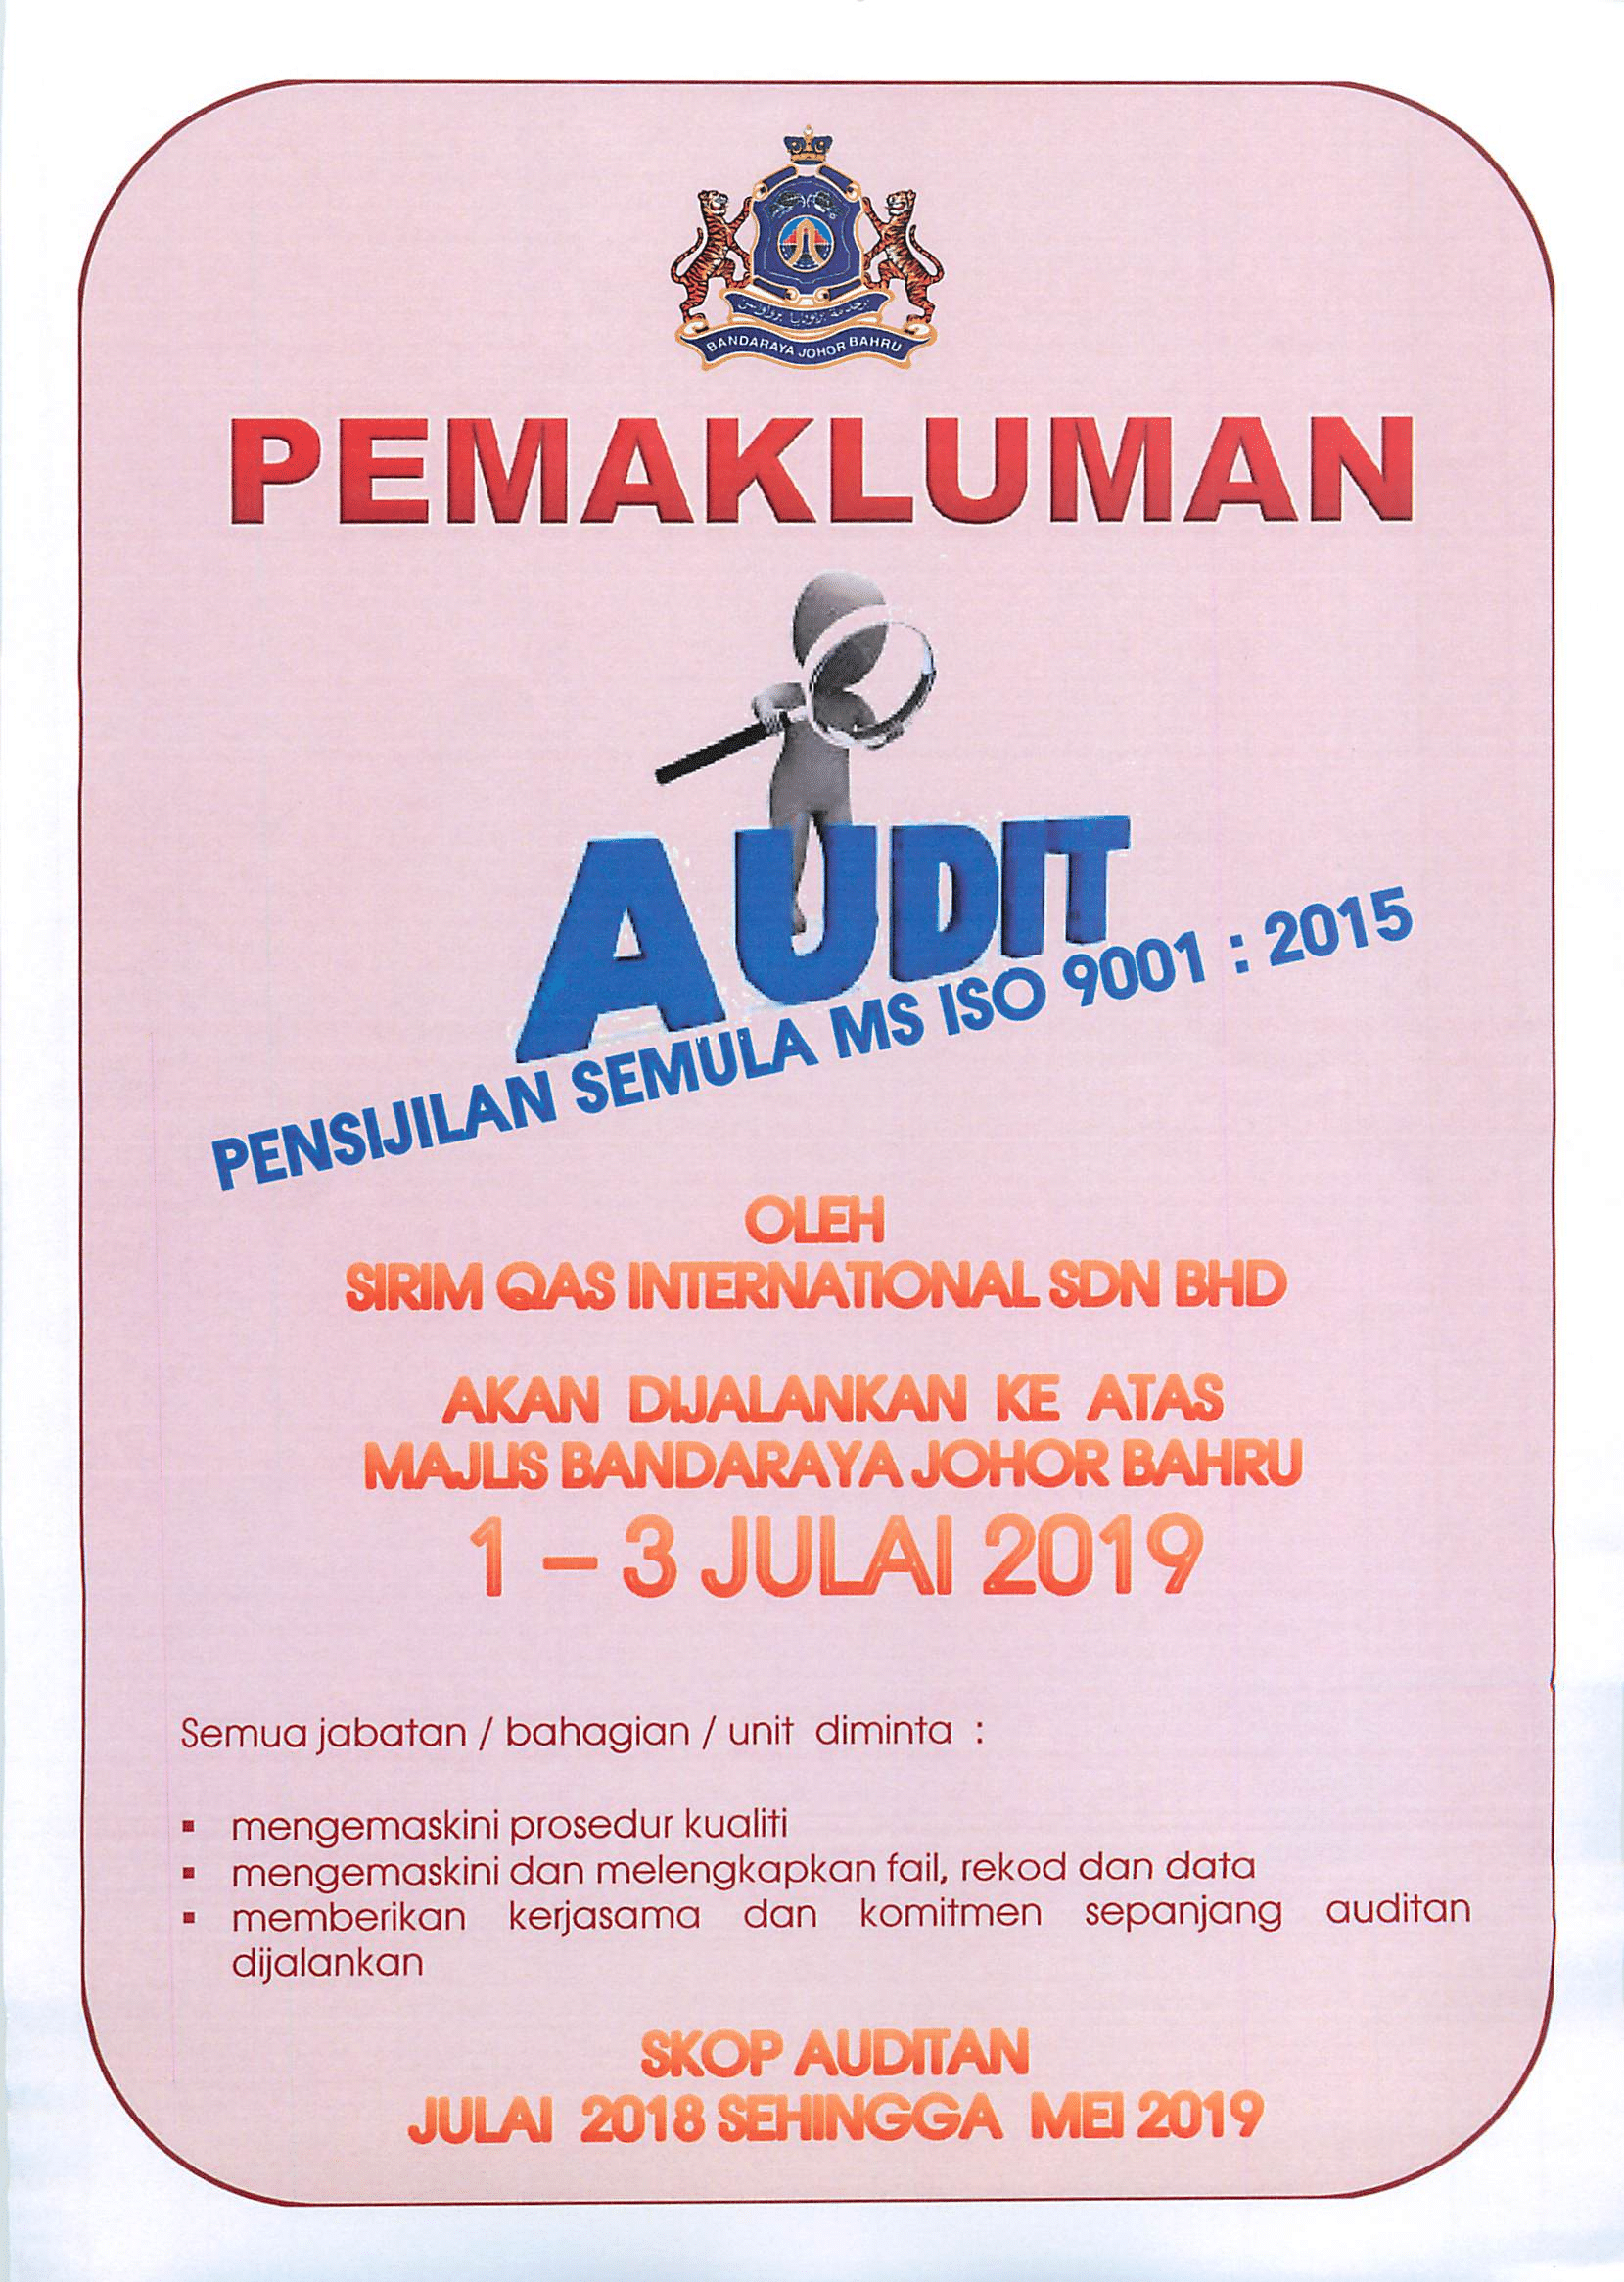 Audit MS ISO 9001 : 2015